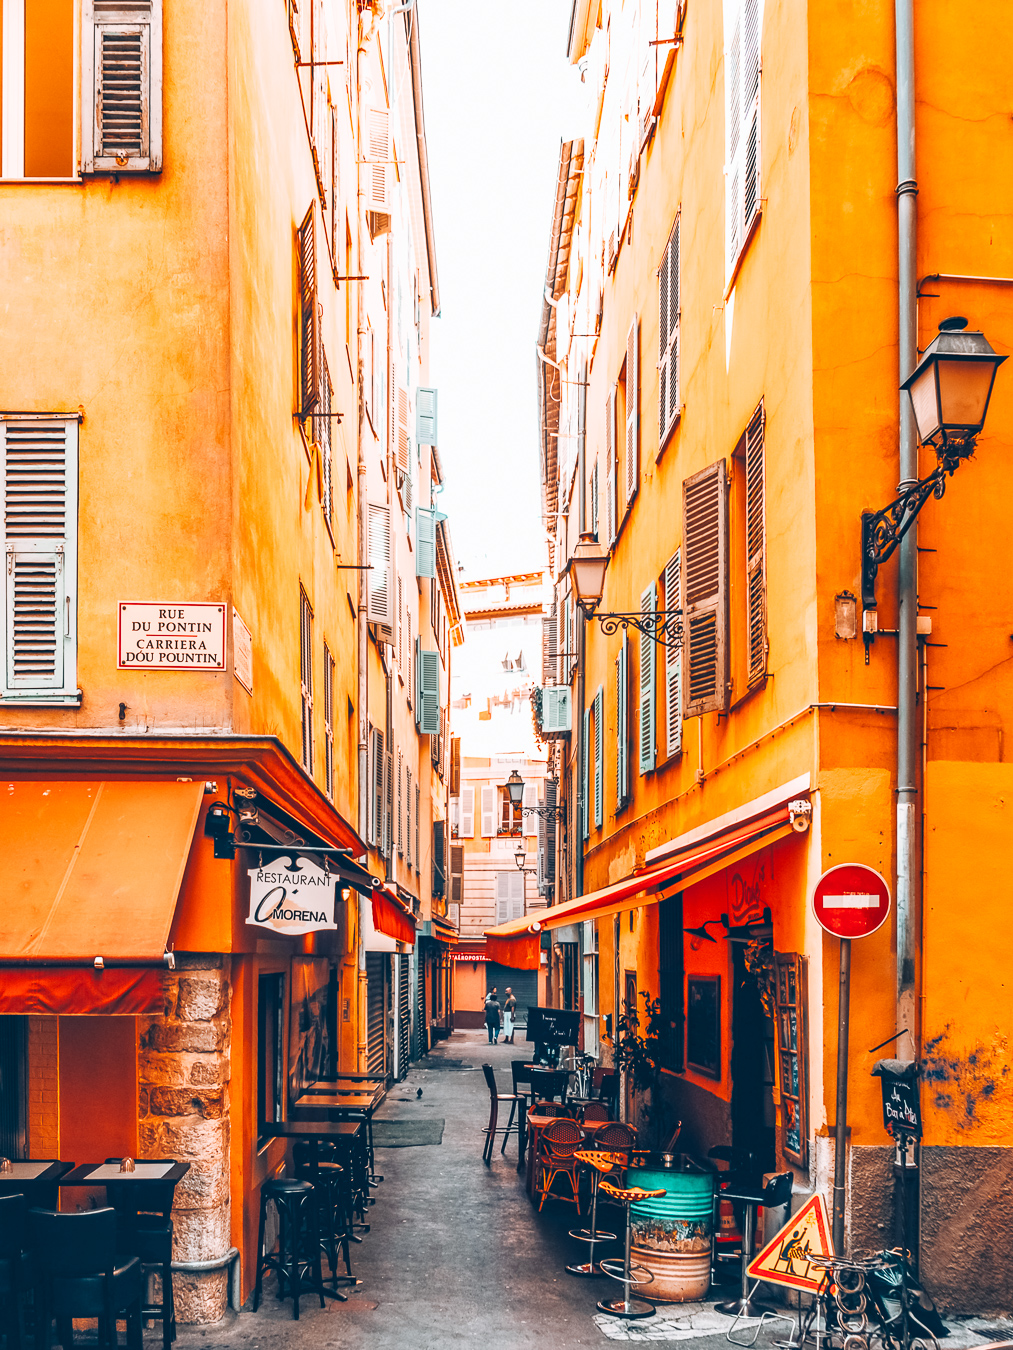 A beautiful yellow street in the city of Nice in Europe